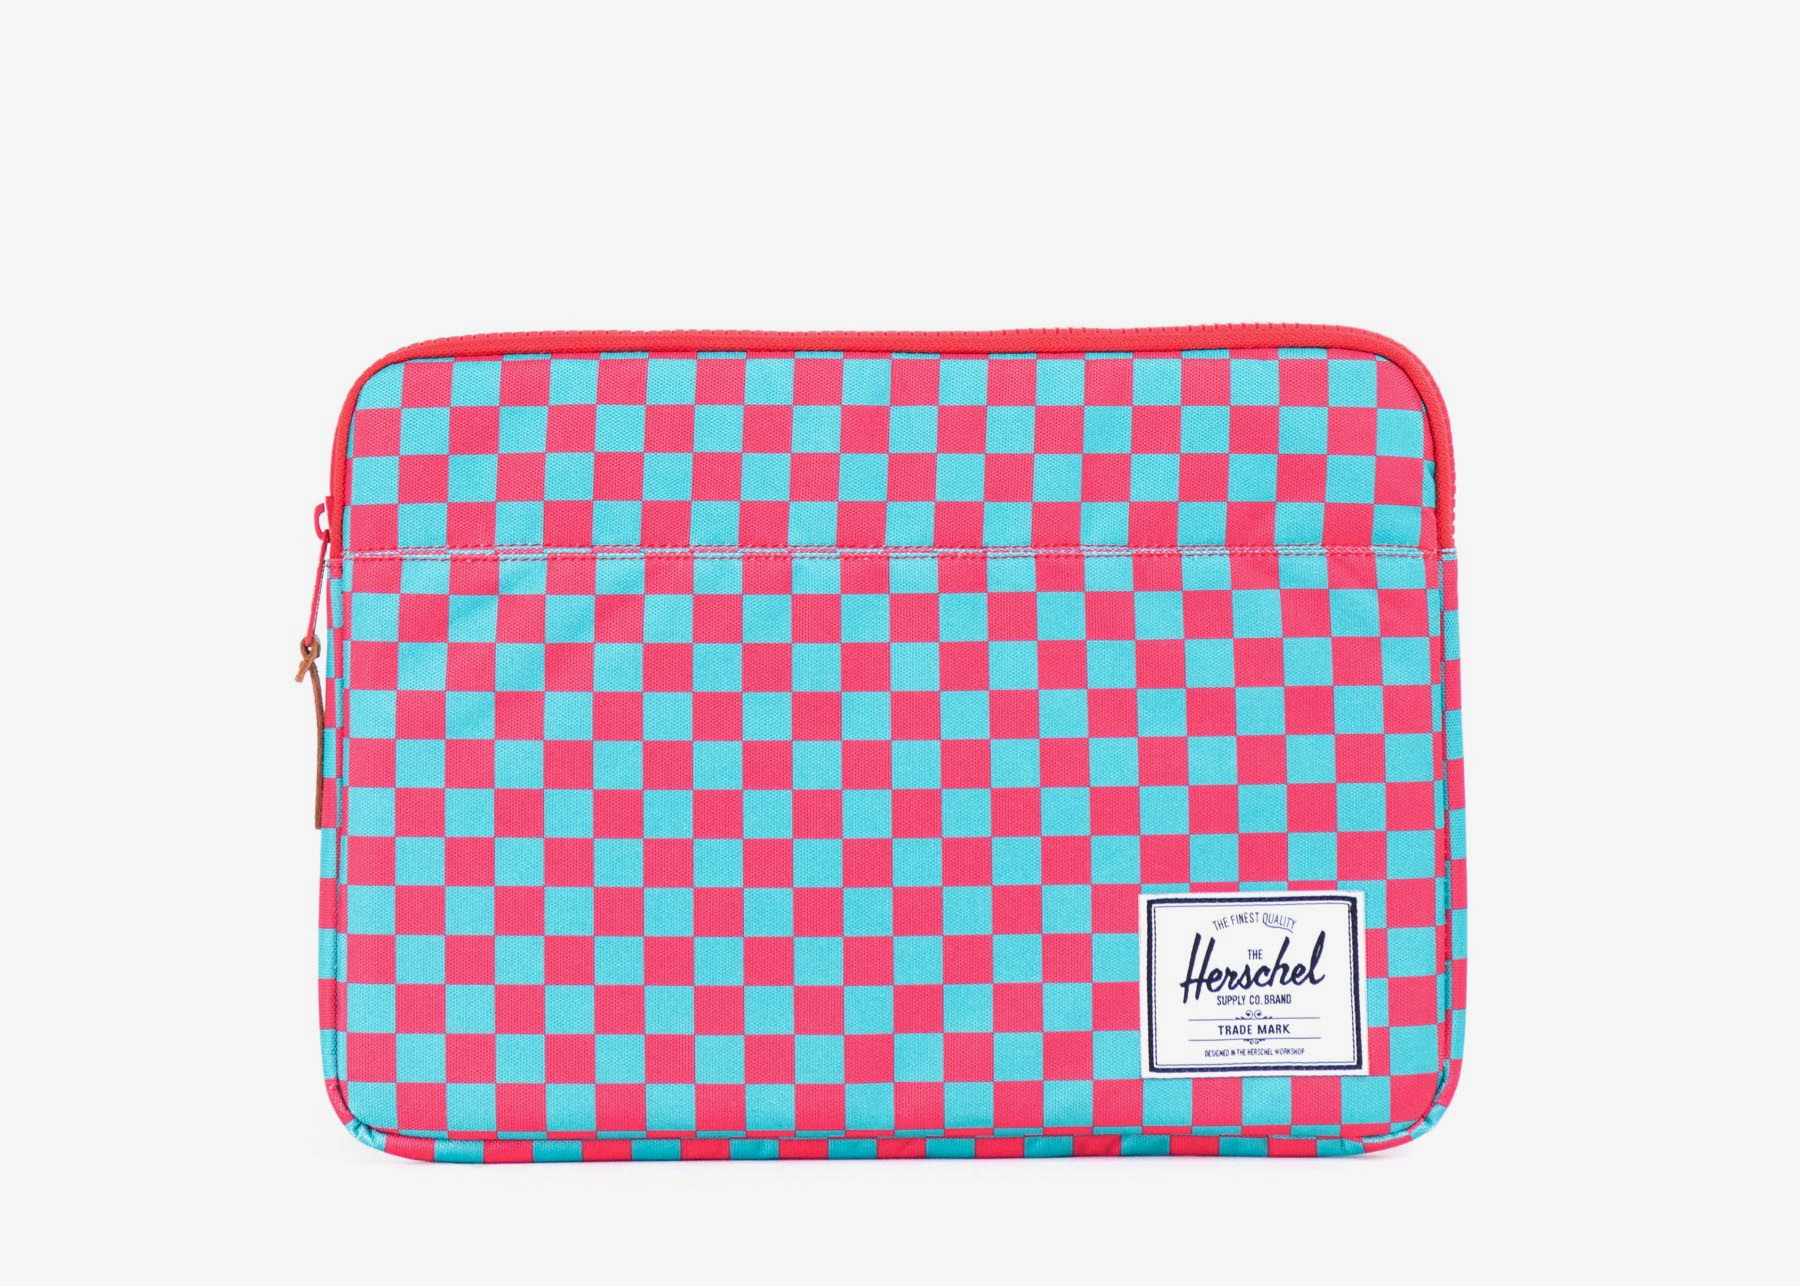 HSC_SUM14_LaptopSleeves_MEDIA_01